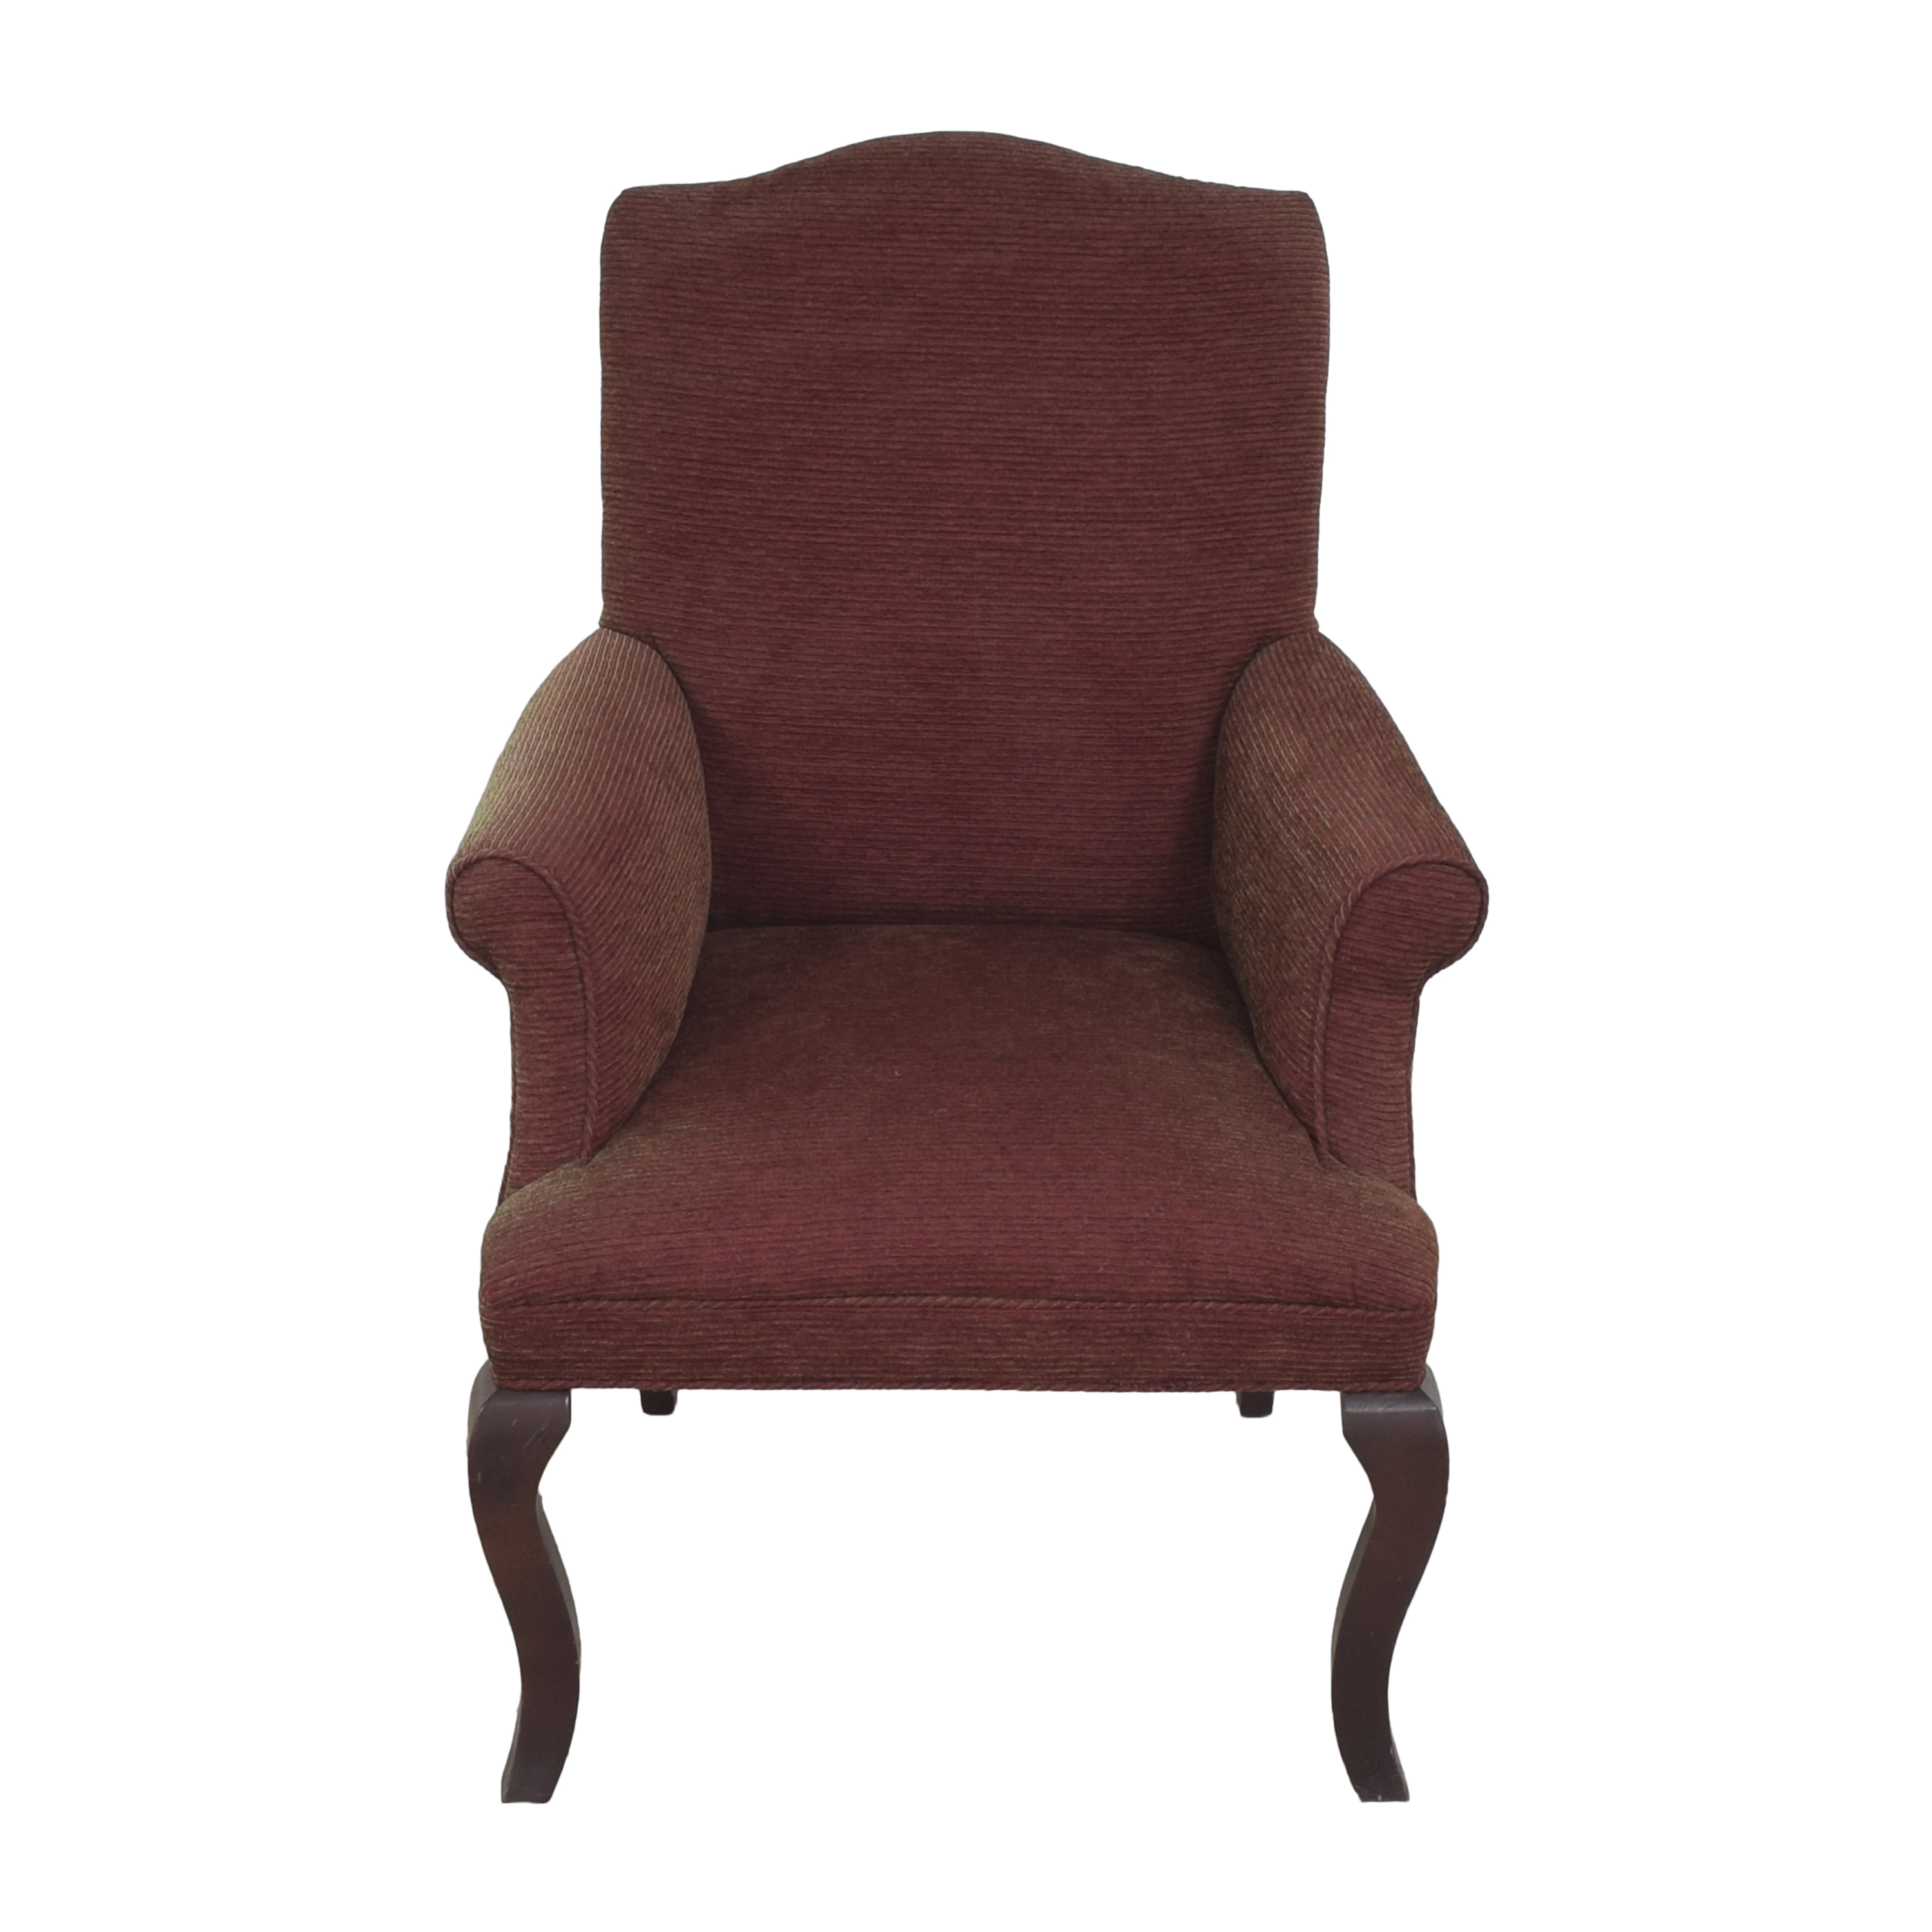 buy Crate & Barrel Upholstered Arm Chair Crate & Barrel Chairs